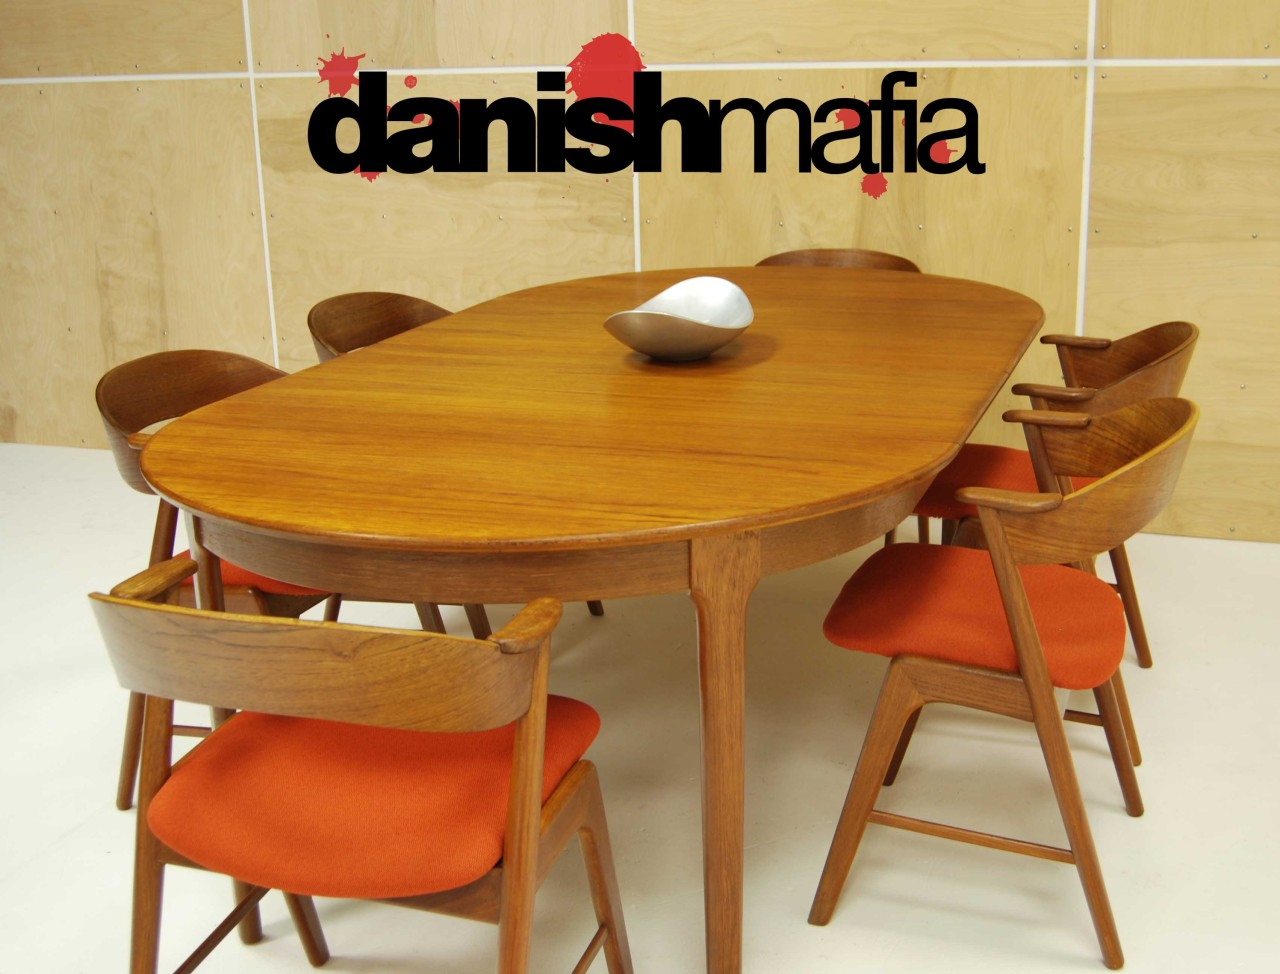 mid century danish modern huge teak dining table oval extension 2 leaves eames mid century kitchen table MID CENTURY DANISH MODERN OVAL Henning Kj rnulf TEAK TABLE